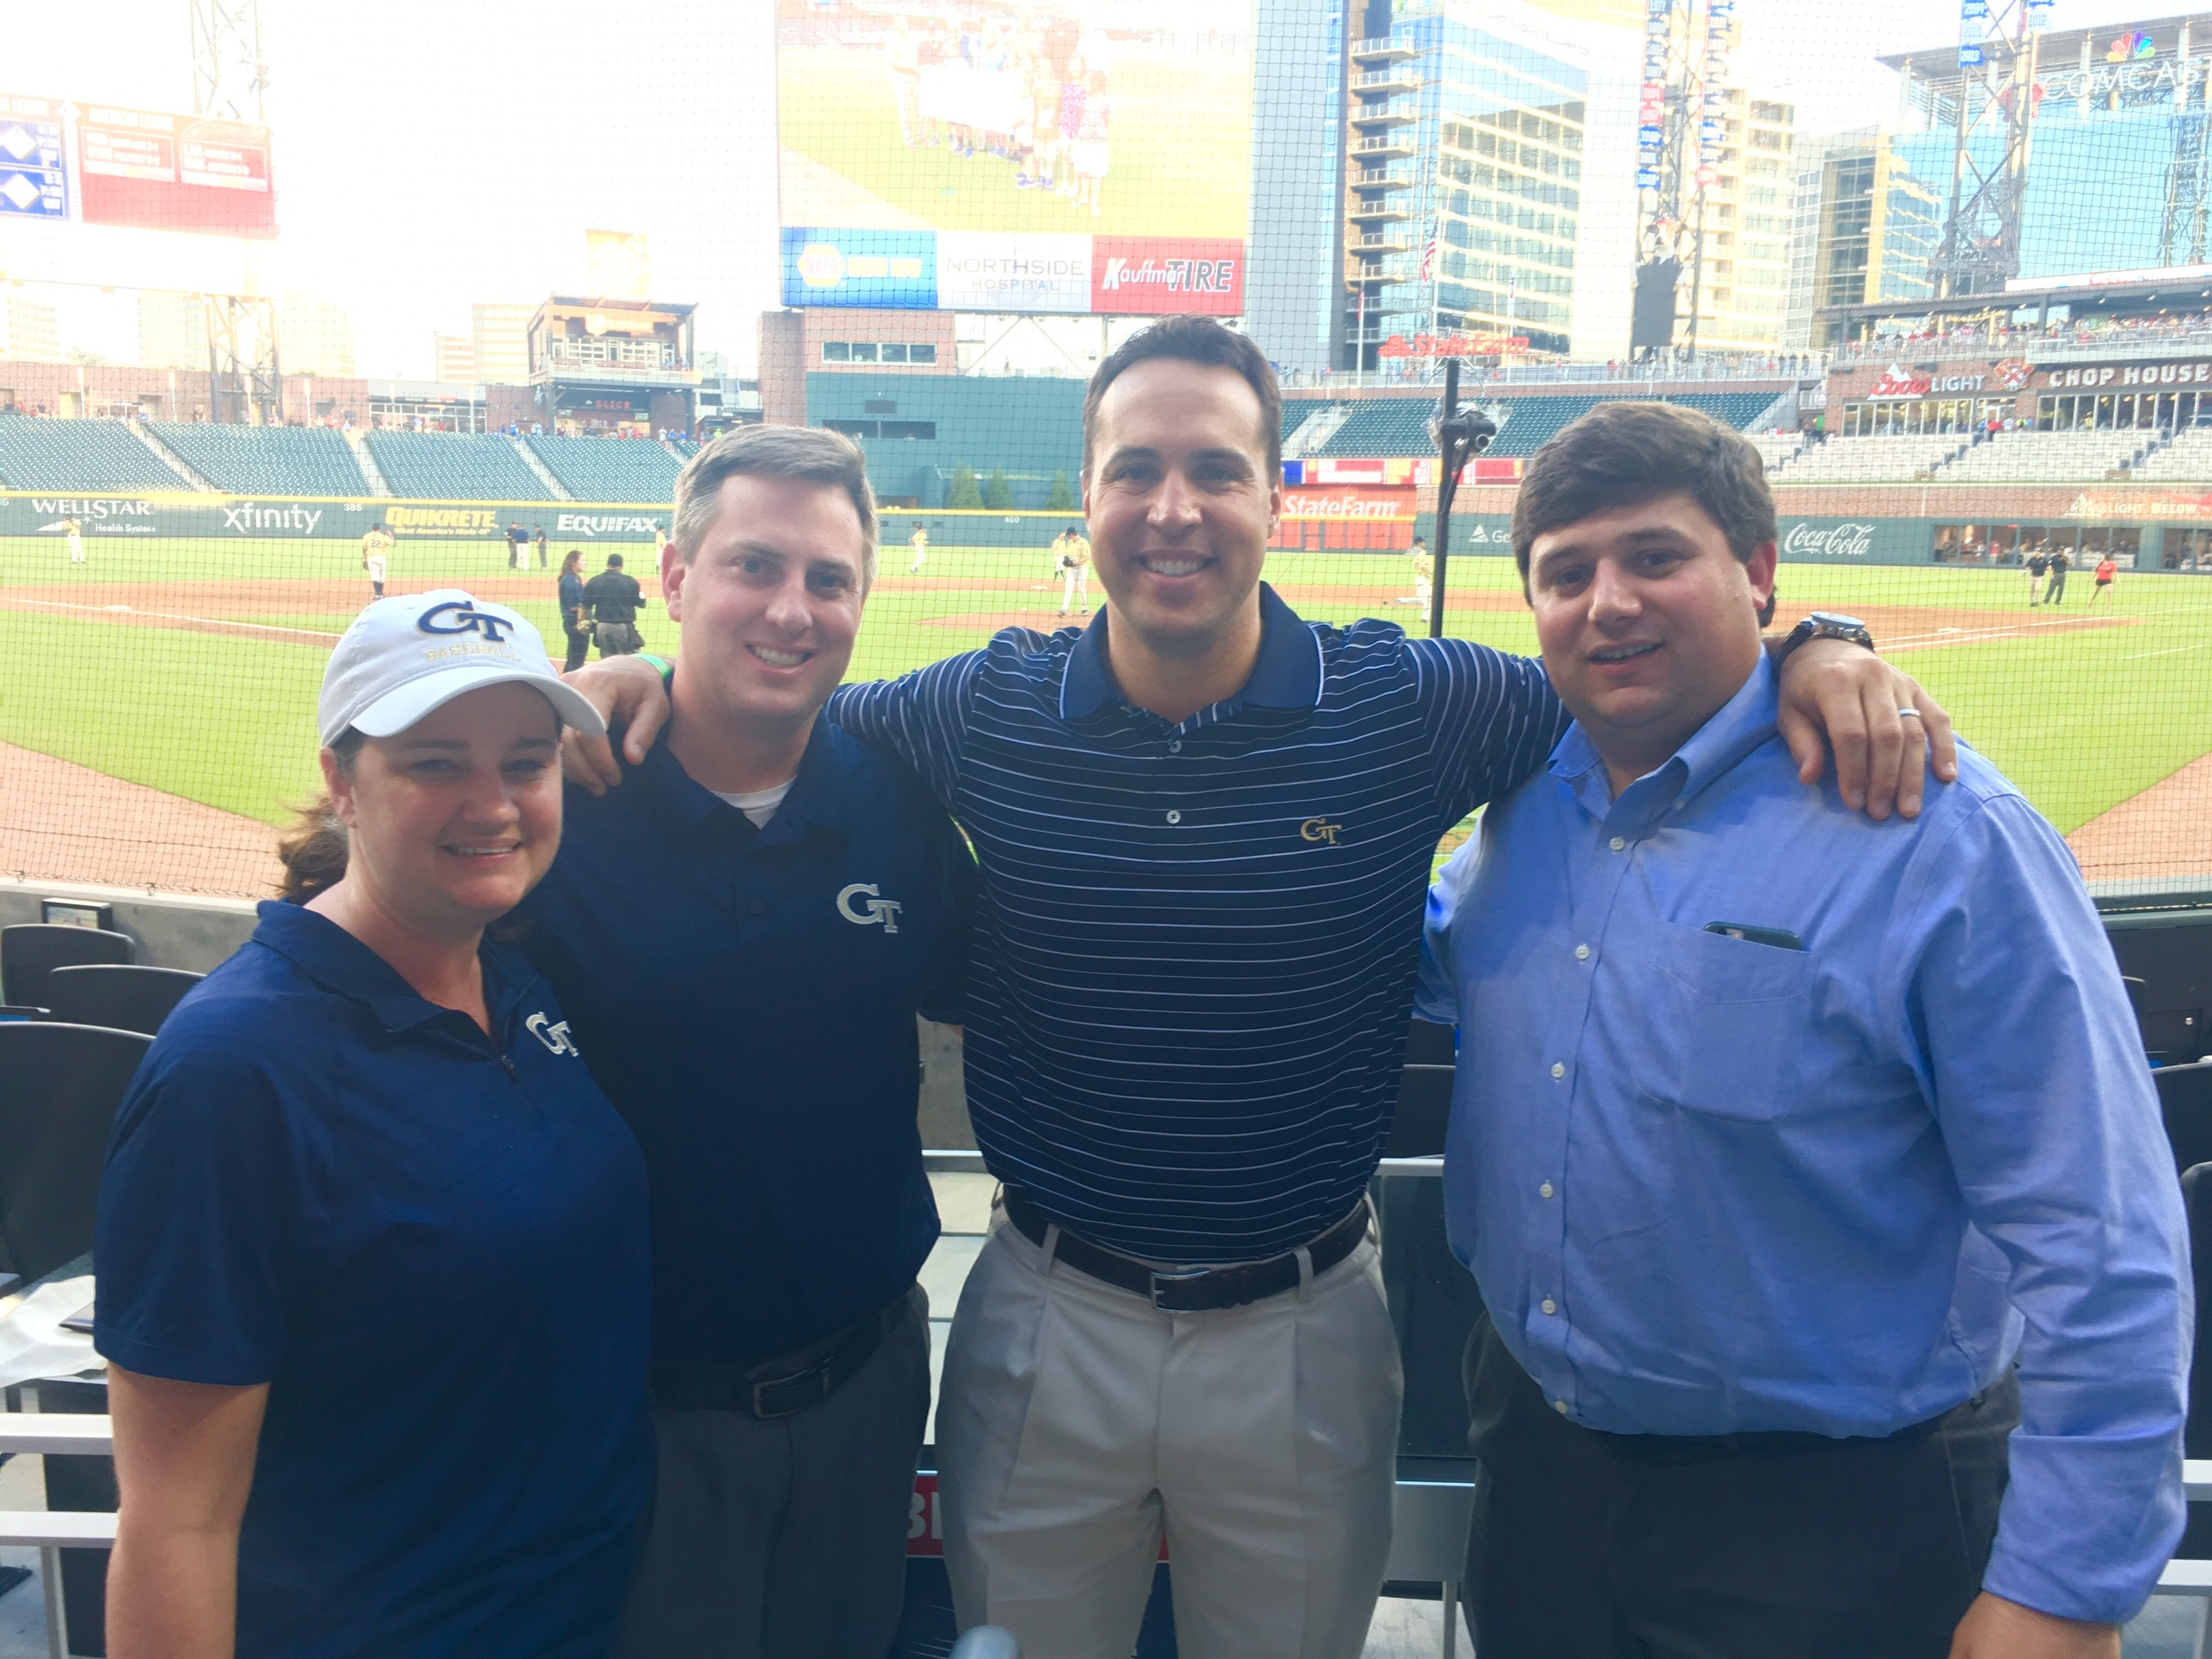 Mark Teixeira with members of the Georgia Tech staff at the 2017 Georgia Tech-Georgia game at SunTrust Park.